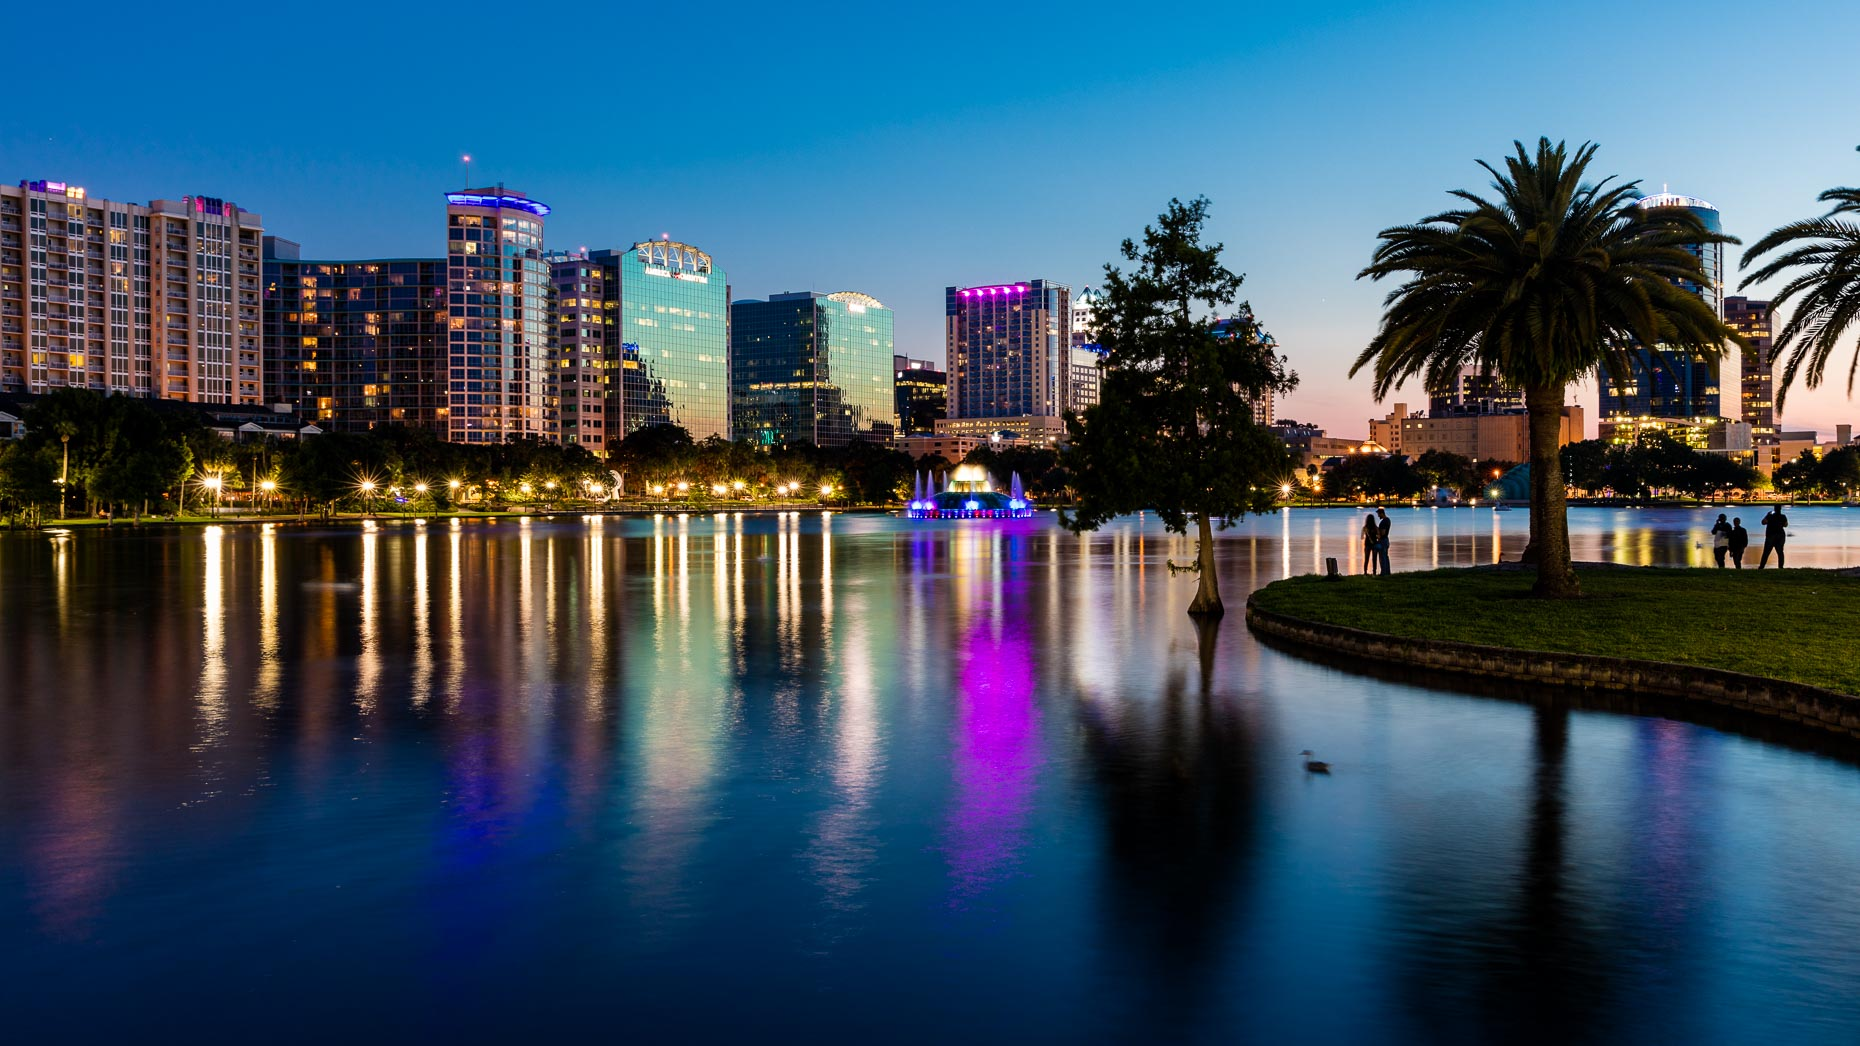 Cityscape of Downtown Orlando Florida